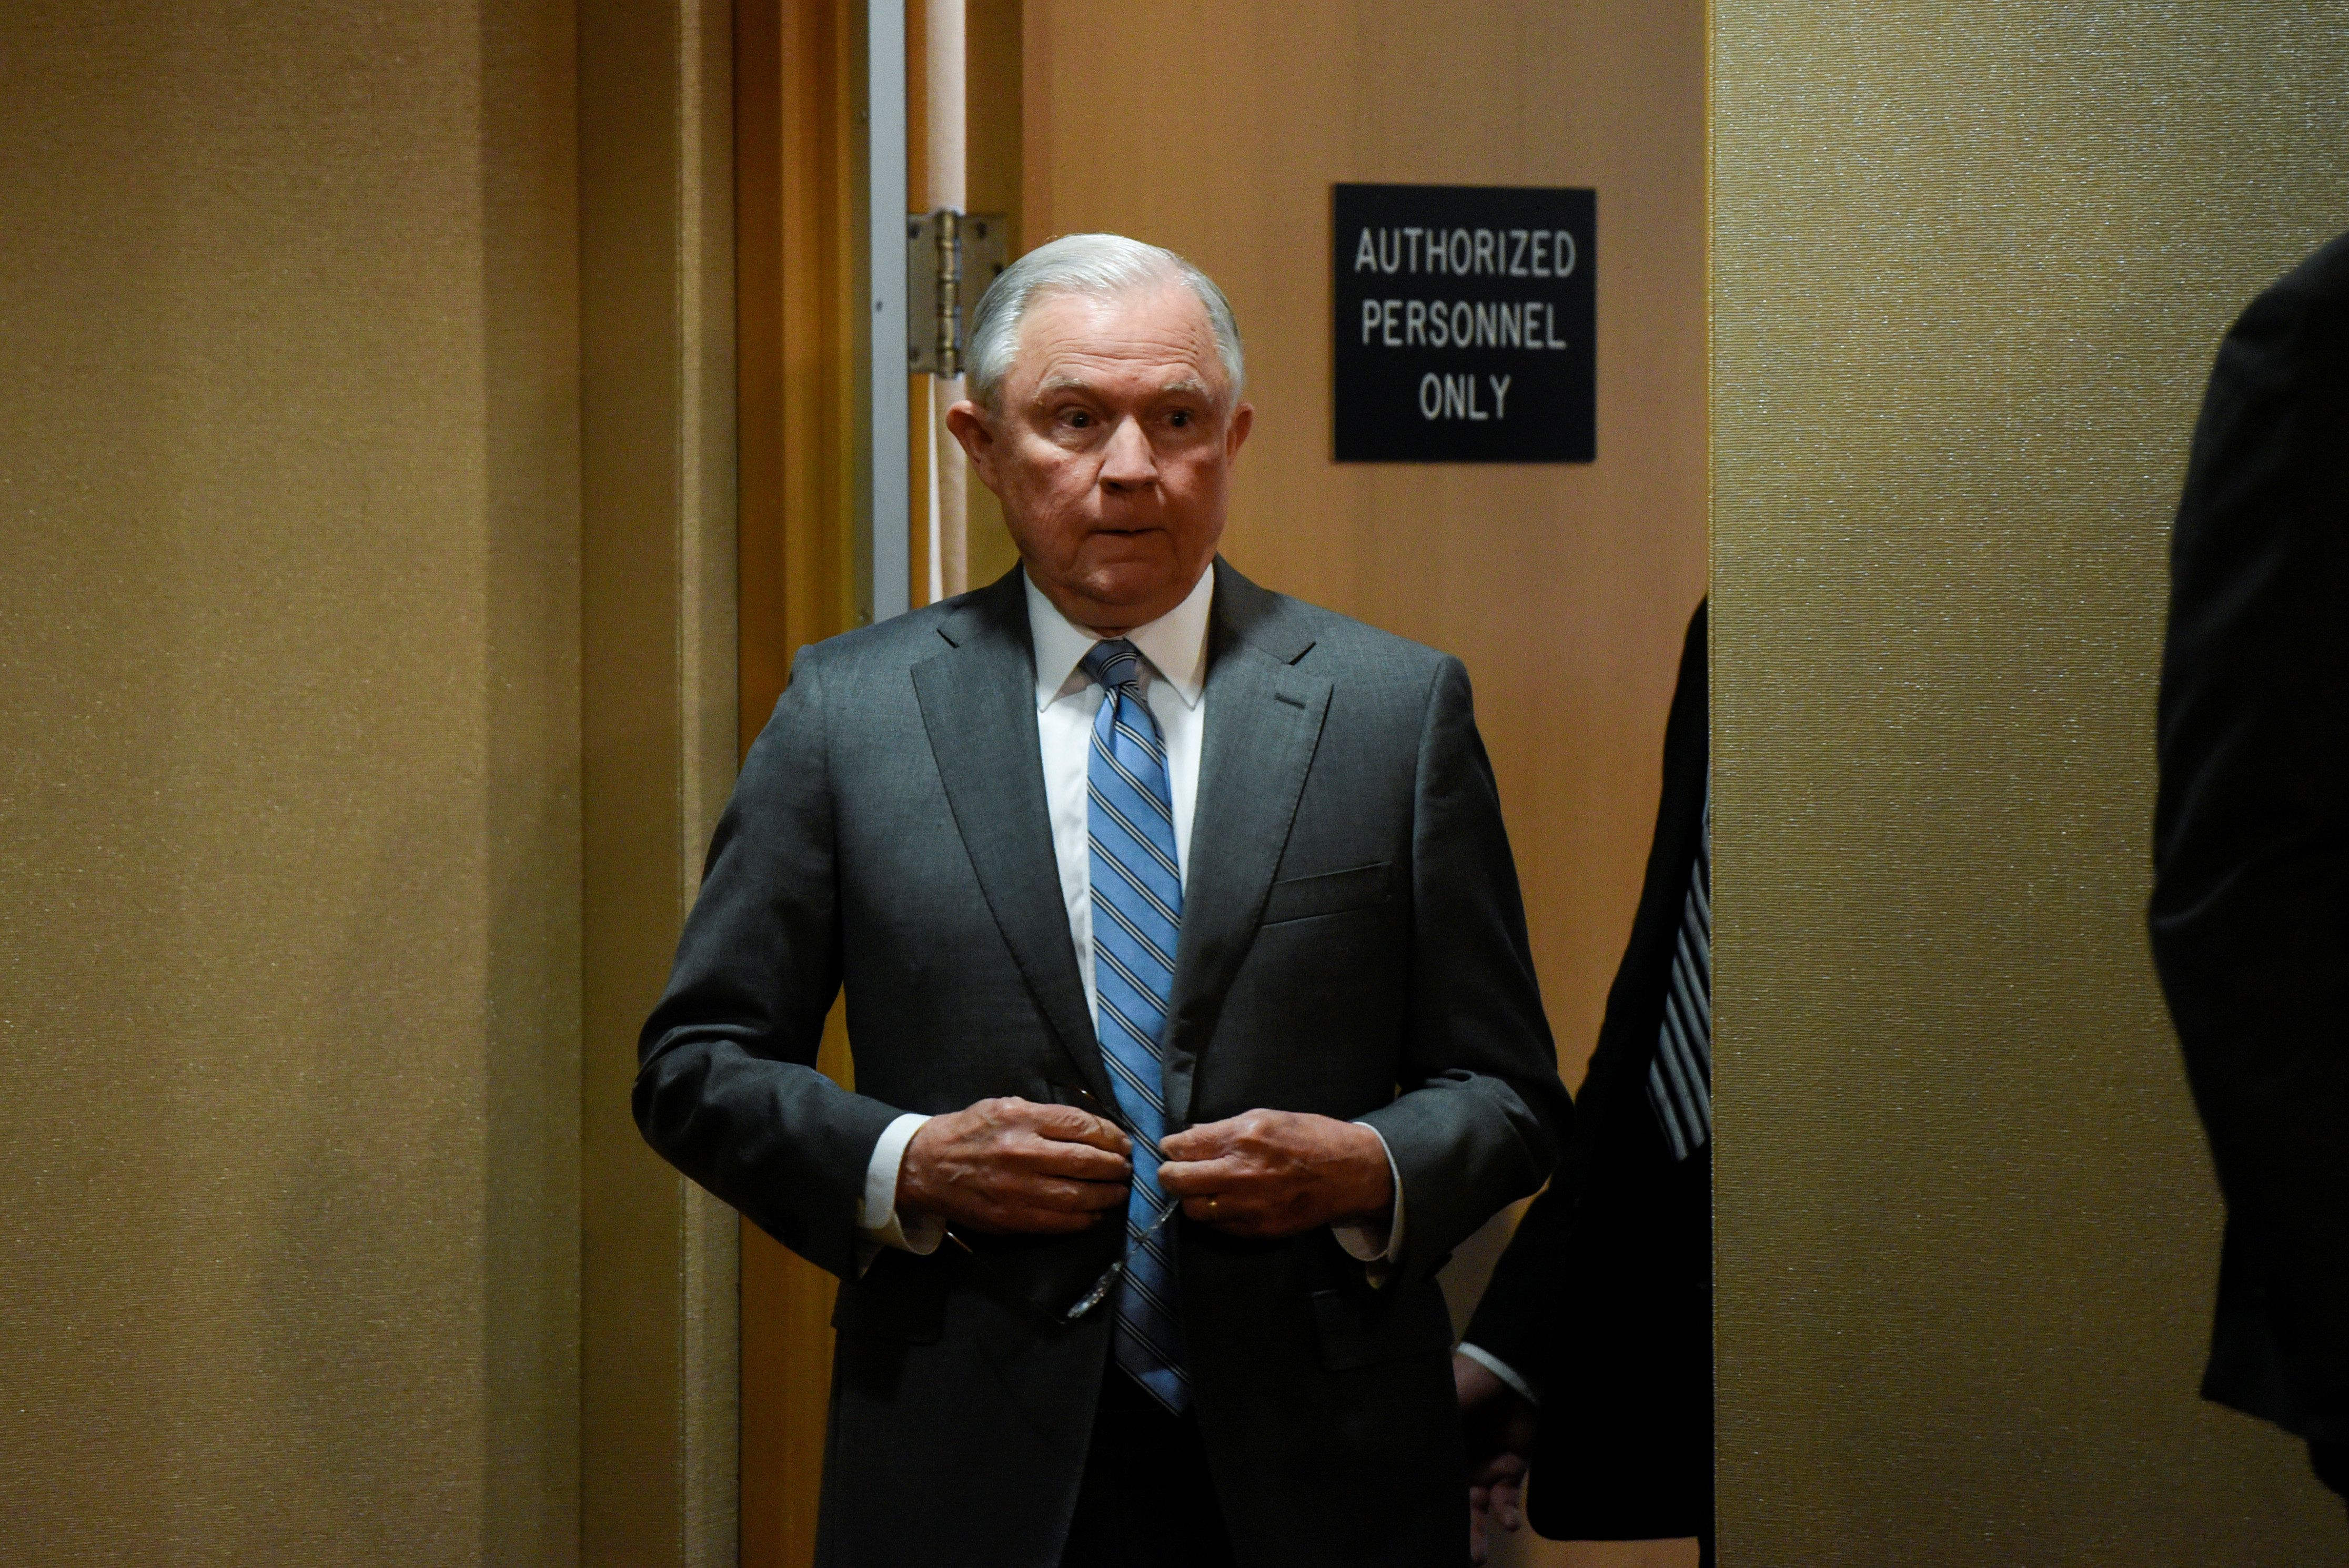 Under Attorney General Jeff Sessions, the Justice Department sought an immediate Supreme Court decision on whether the admini